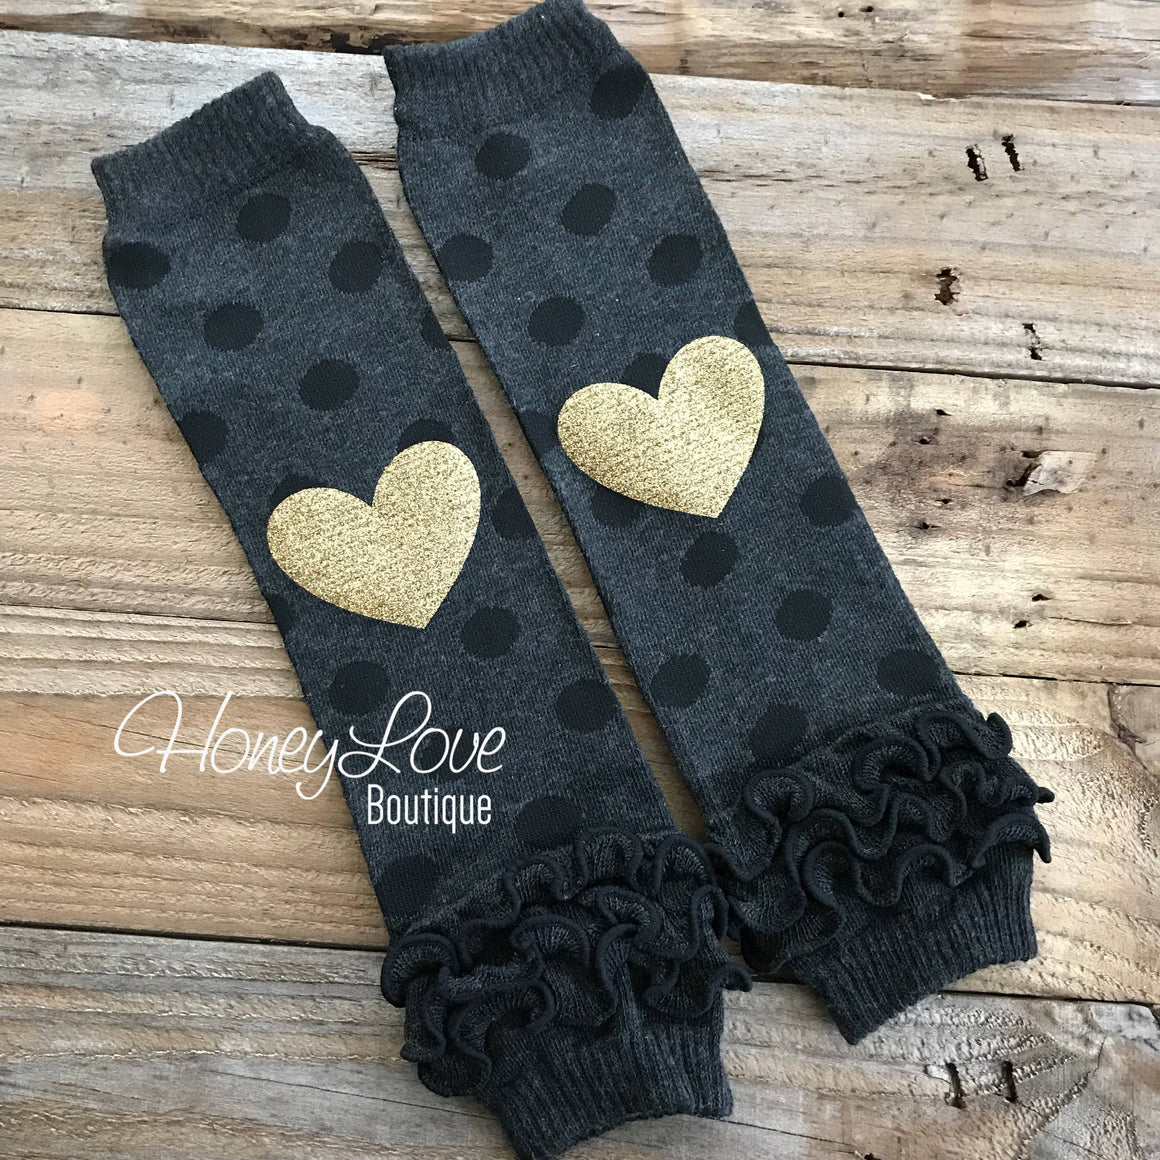 Gray/Black Polka Dot Leg Warmers with Gold Glitter Heart and matching headband - HoneyLoveBoutique